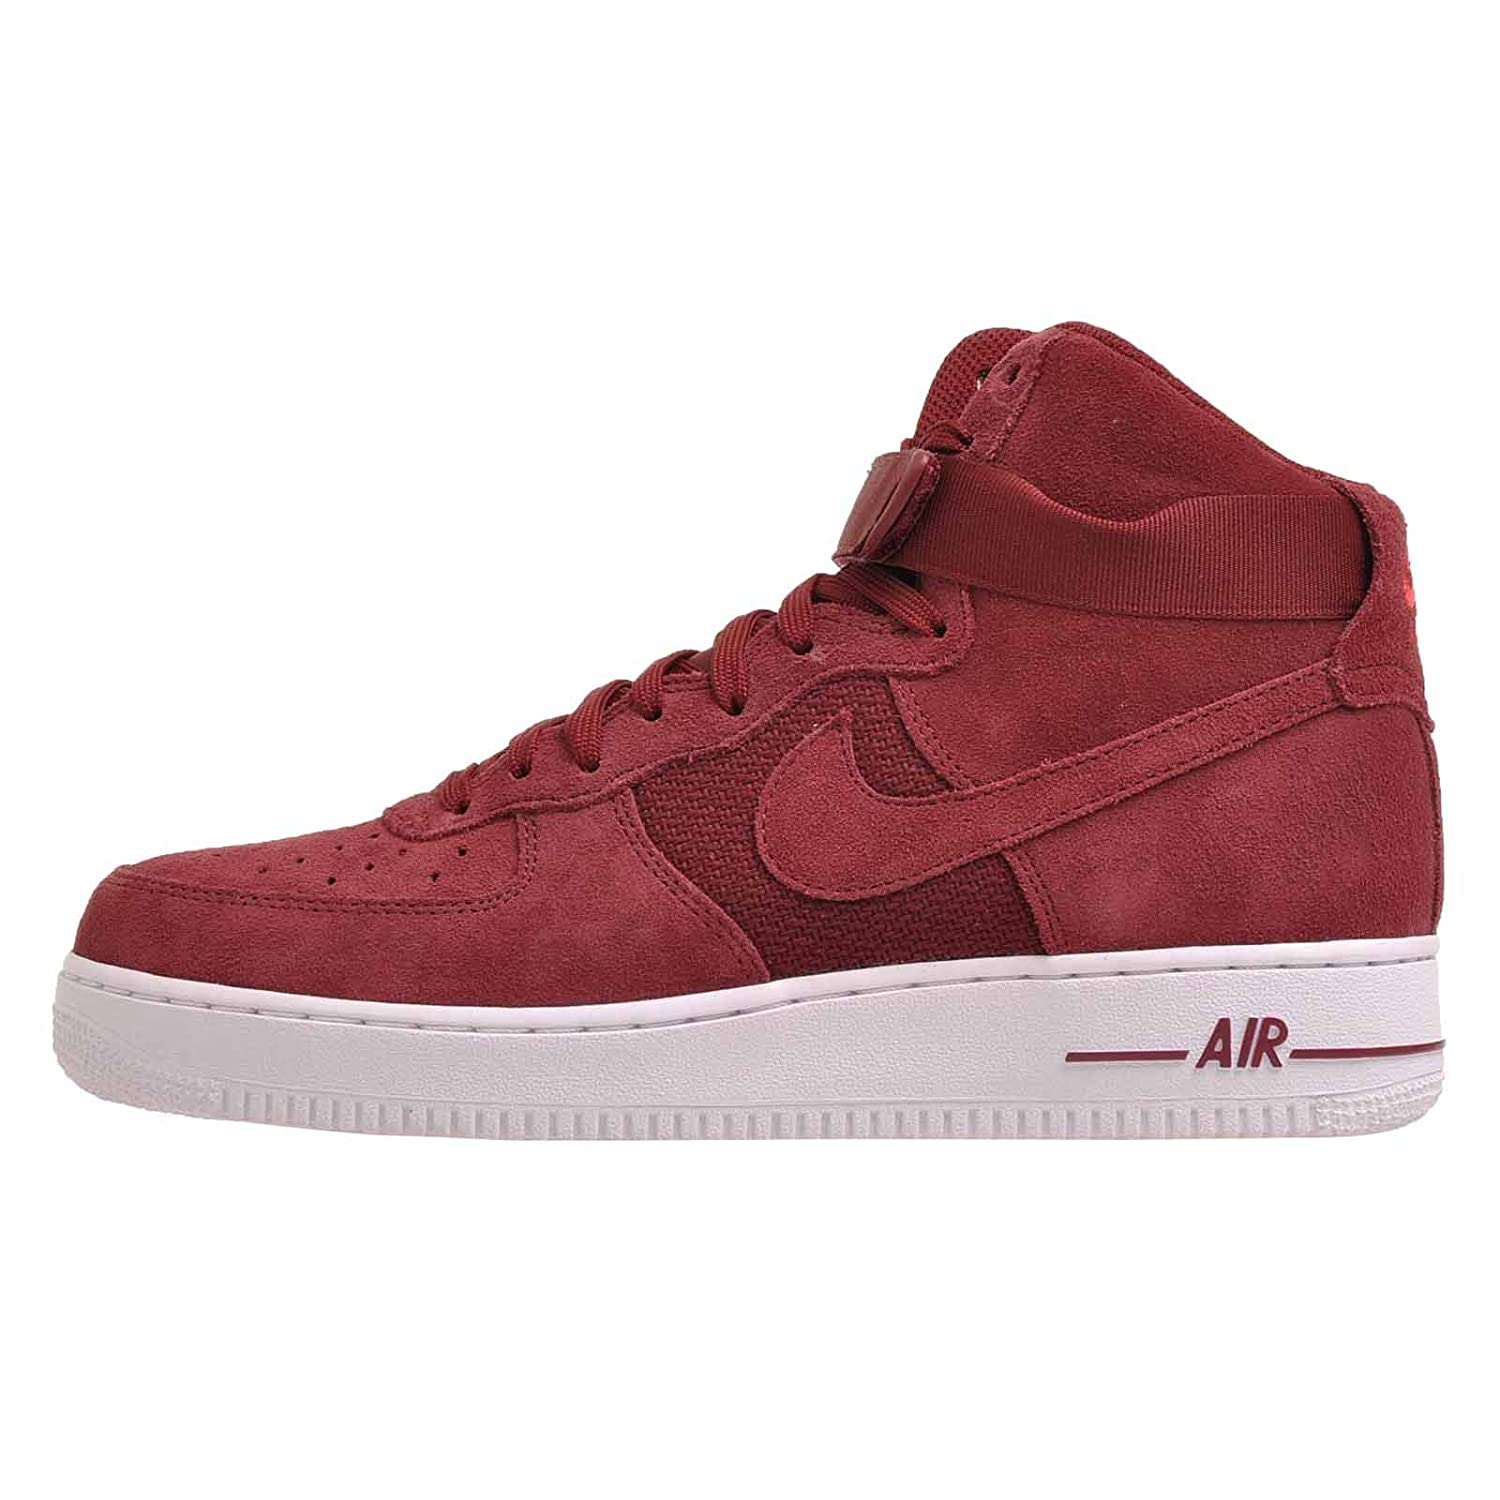 Air Force 1 High 07, University Red